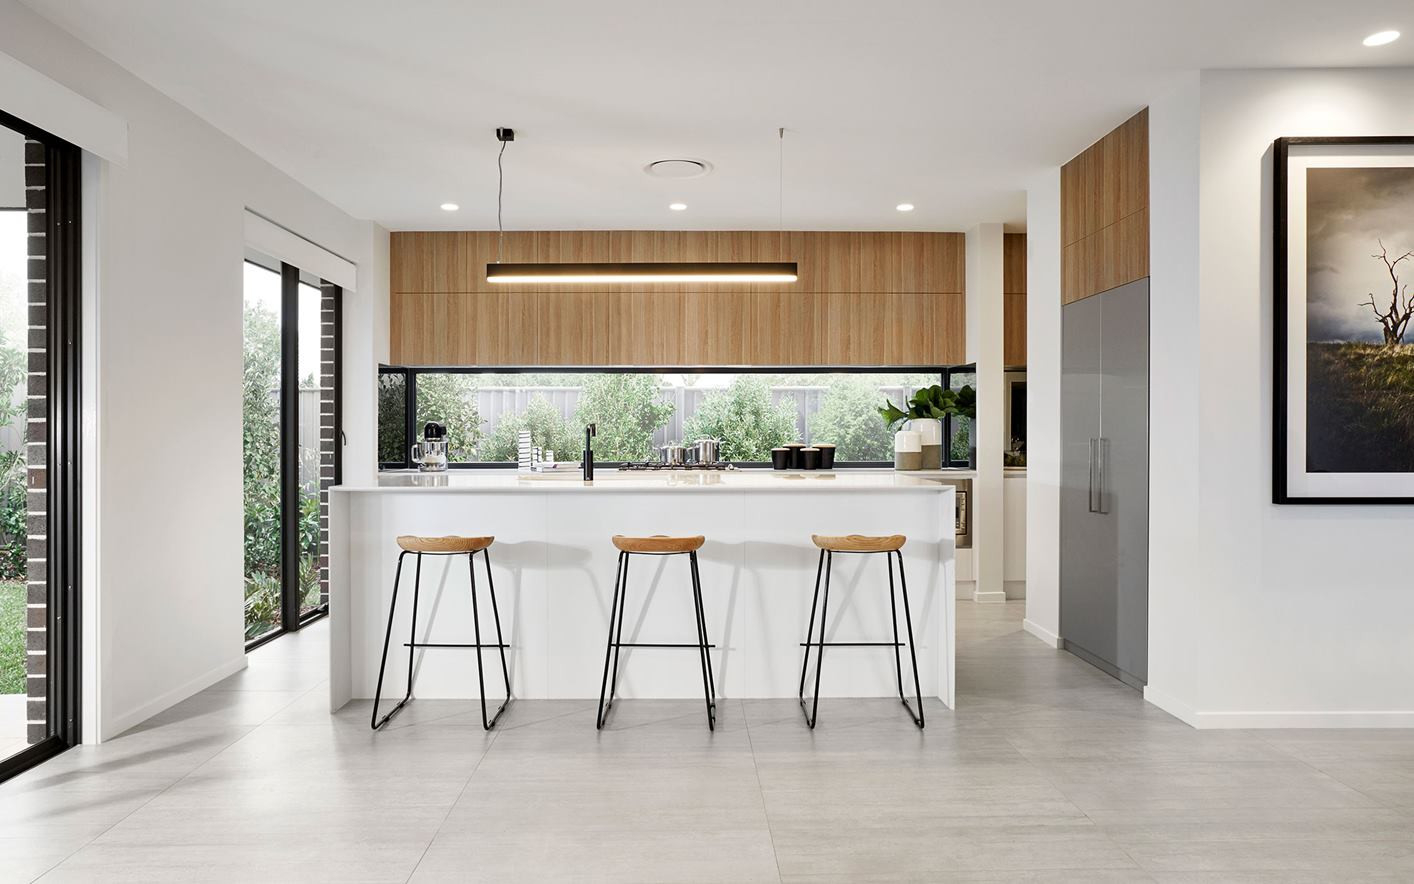 Kitchen - C white - U wood - B white dou